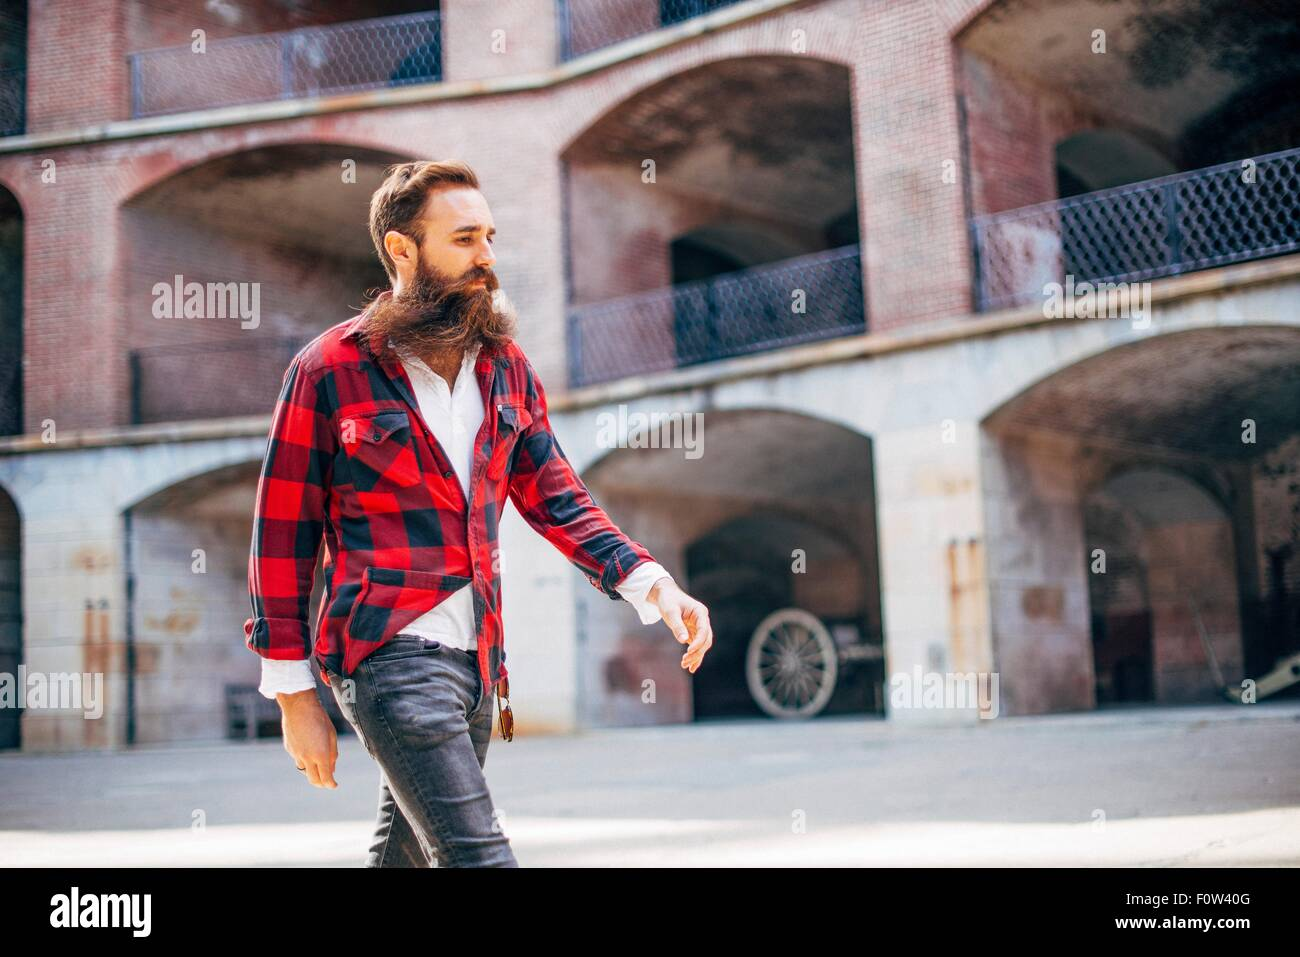 Homme avec barbe walking Photo Stock